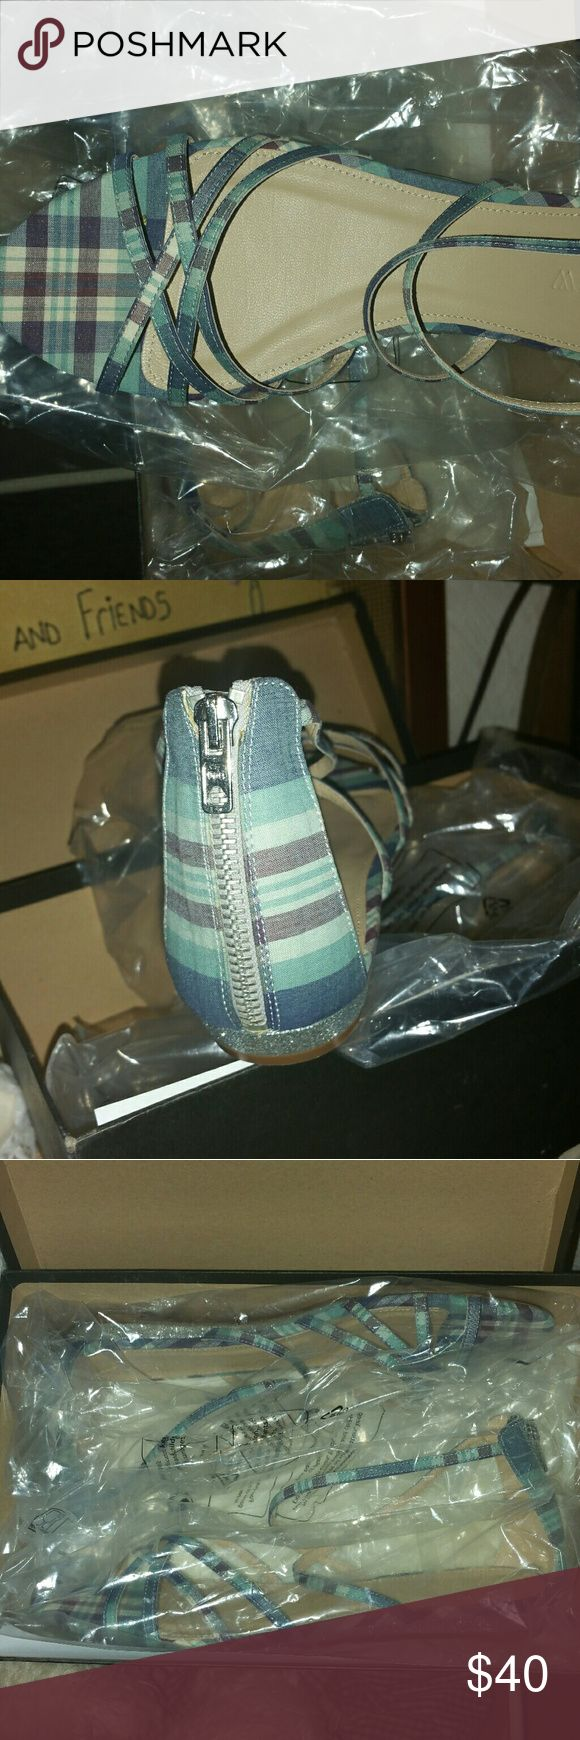 J. Crew Sandals Seafoam multi color, zips up the back,  i love these shoes bought them last year thinking i would wear them and never did. In the original box still has the plastic around them. J. Crew Shoes Sandals